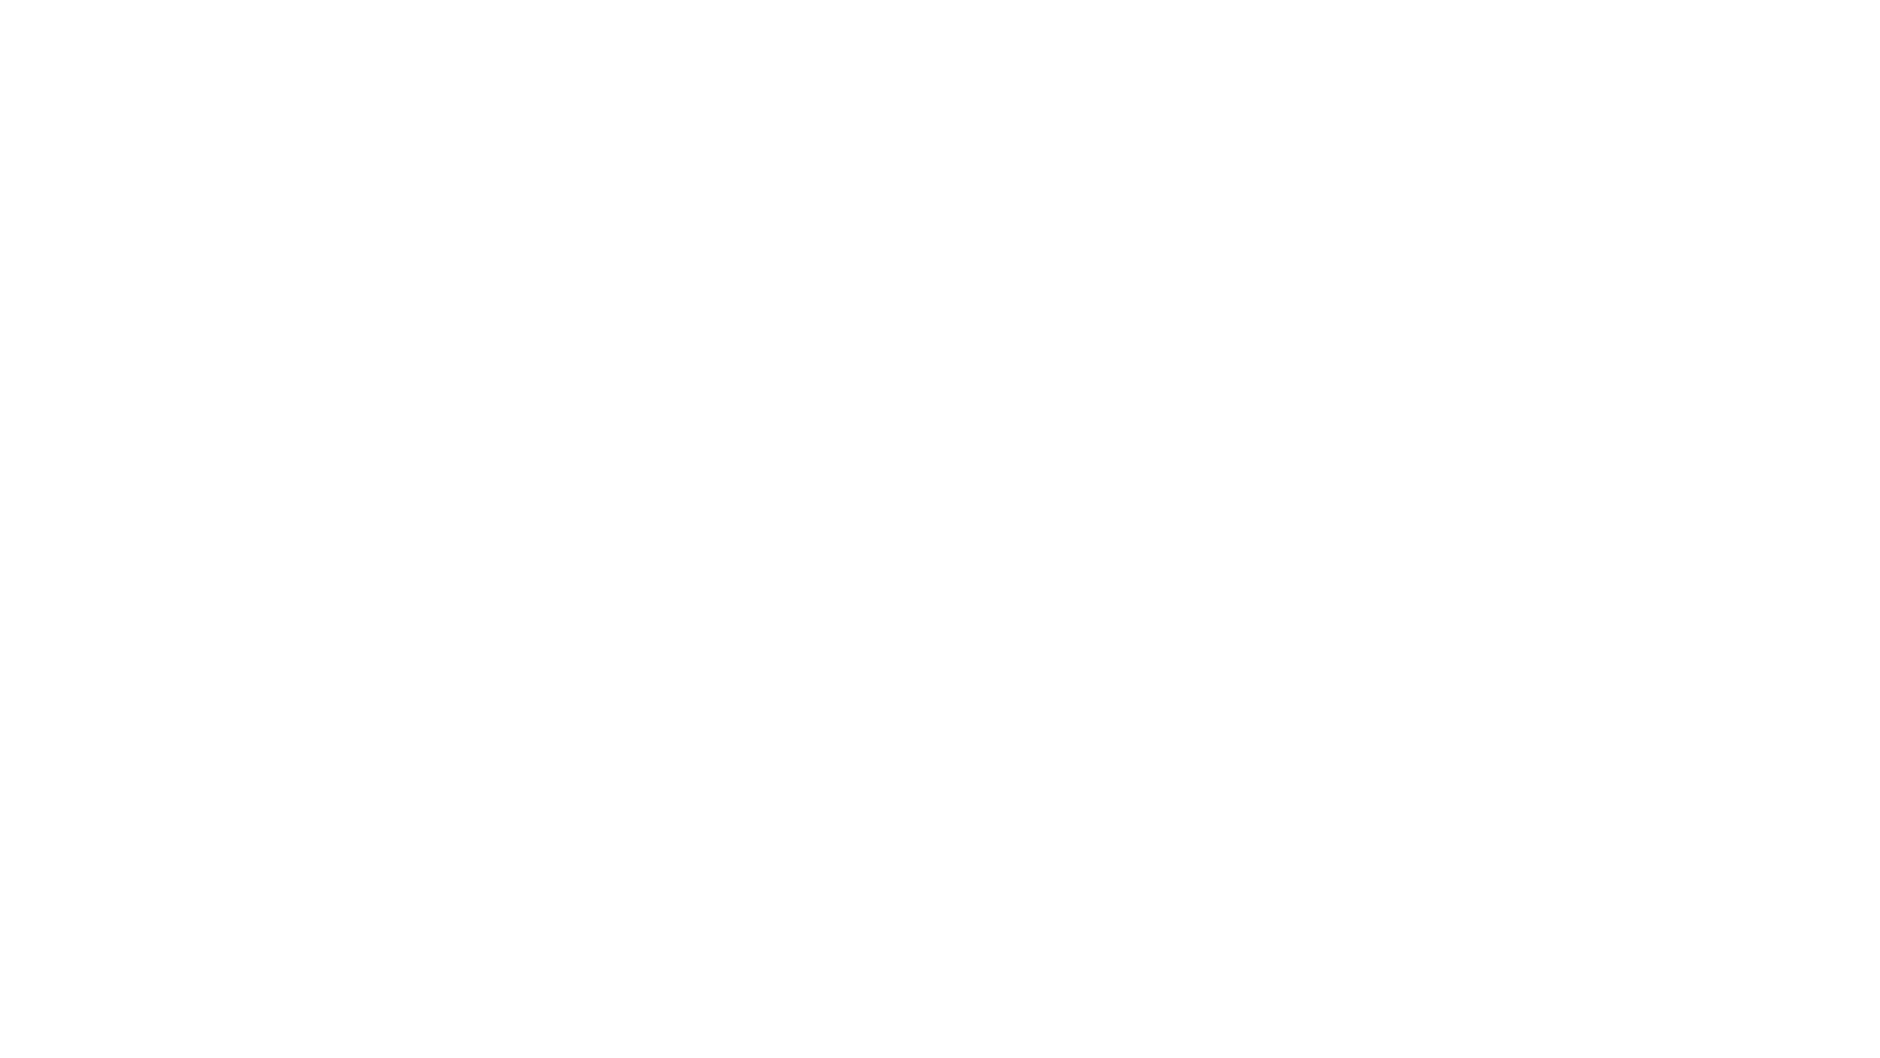 THE SHOP ONLINE #ThingsChanging